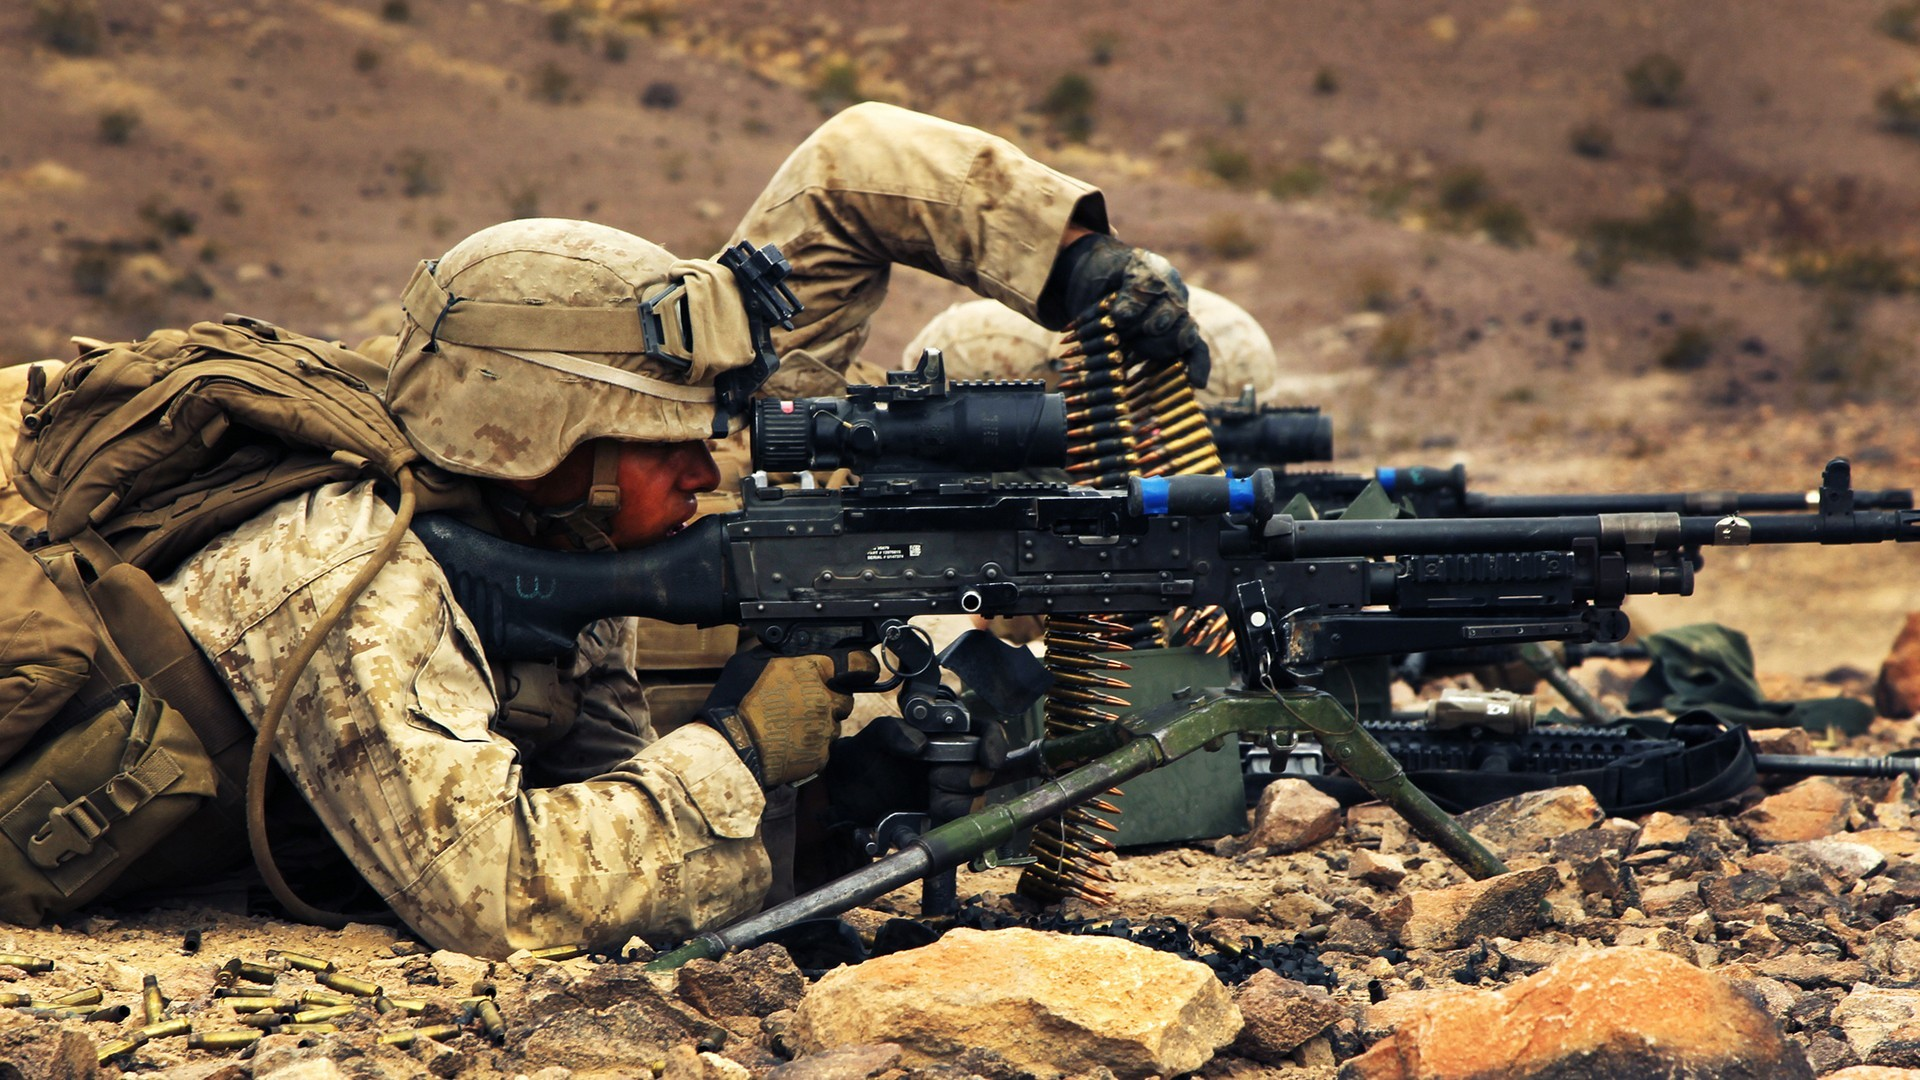 Wallpapers :: M240, tripod, United States Marine Corps